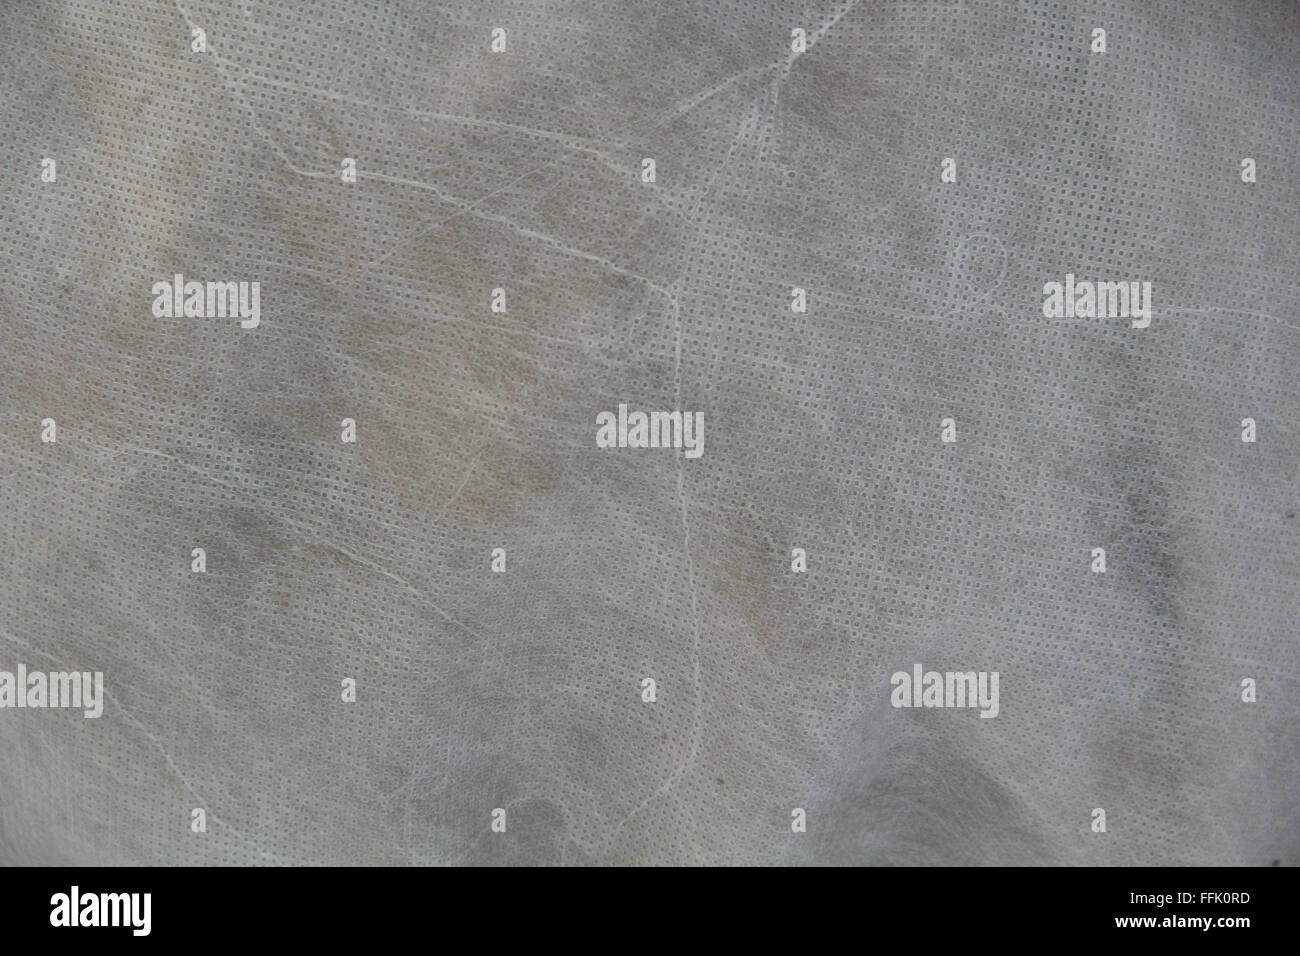 texture of white perforated fabric - Stock Image